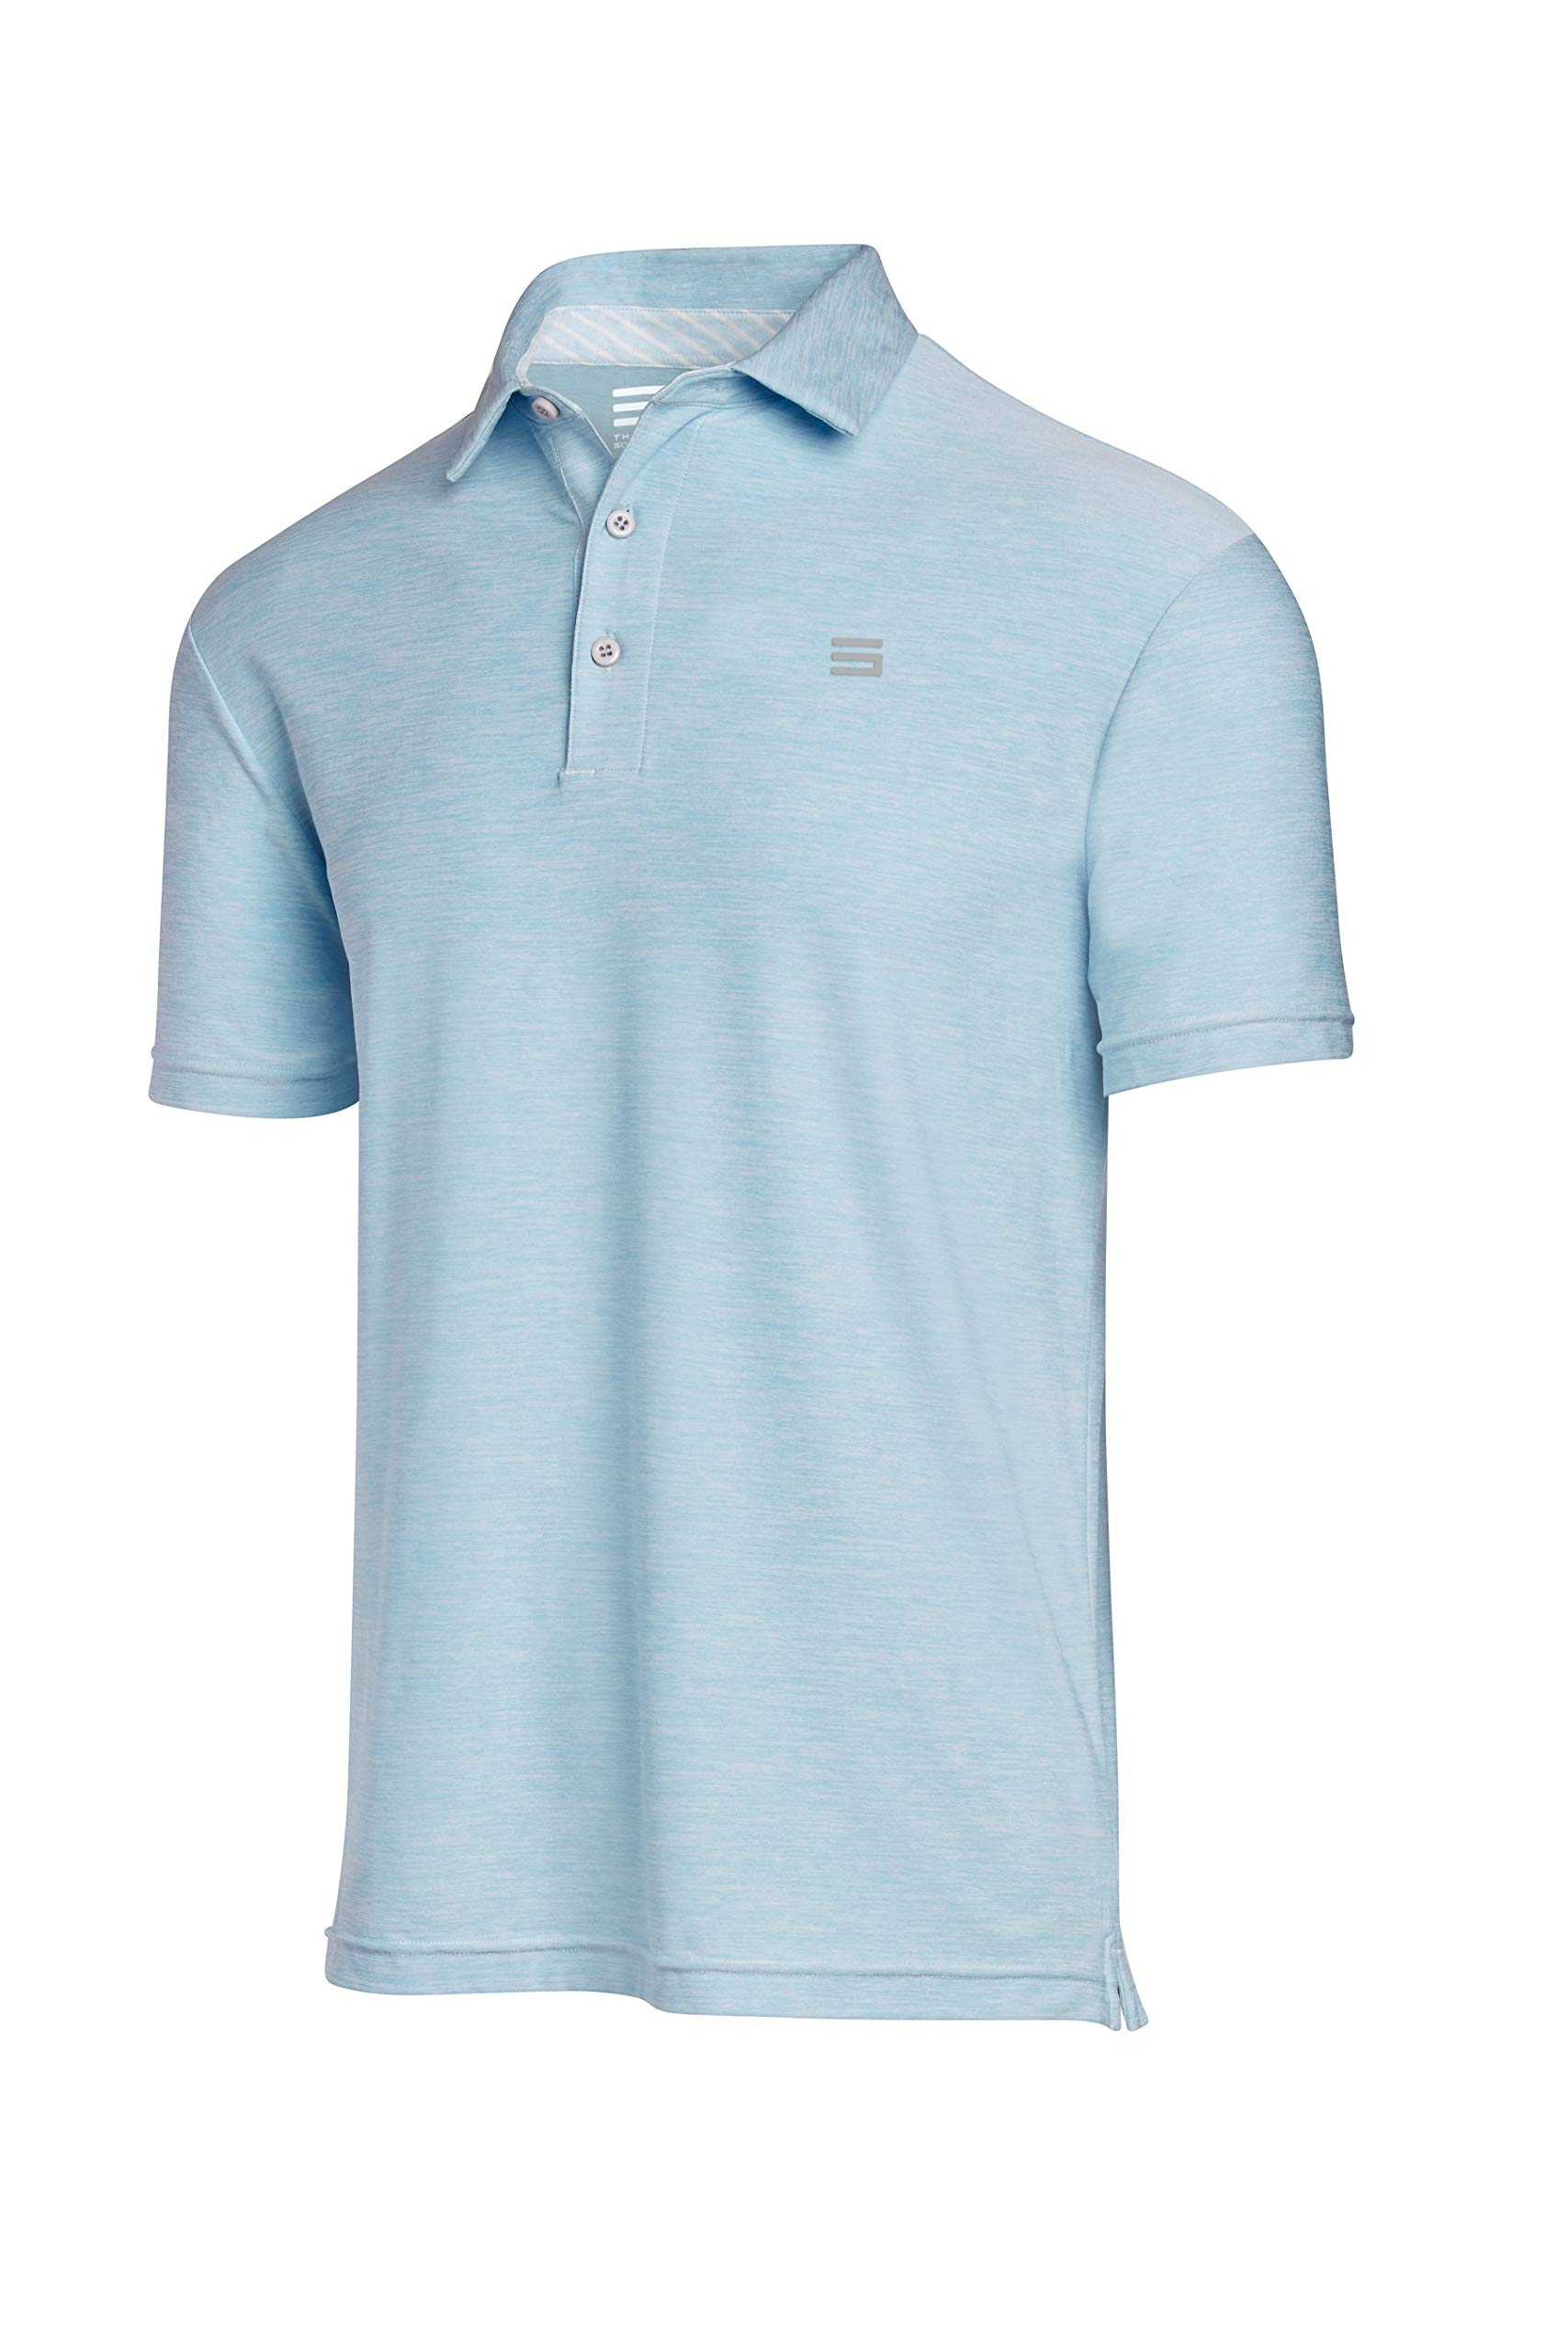 Three Sixty Six Golf Shirts for Men - Dry Fit Short-Sleeve Polo, Athletic Casual Collared T-Shirt Sky Blue by Three Sixty Six